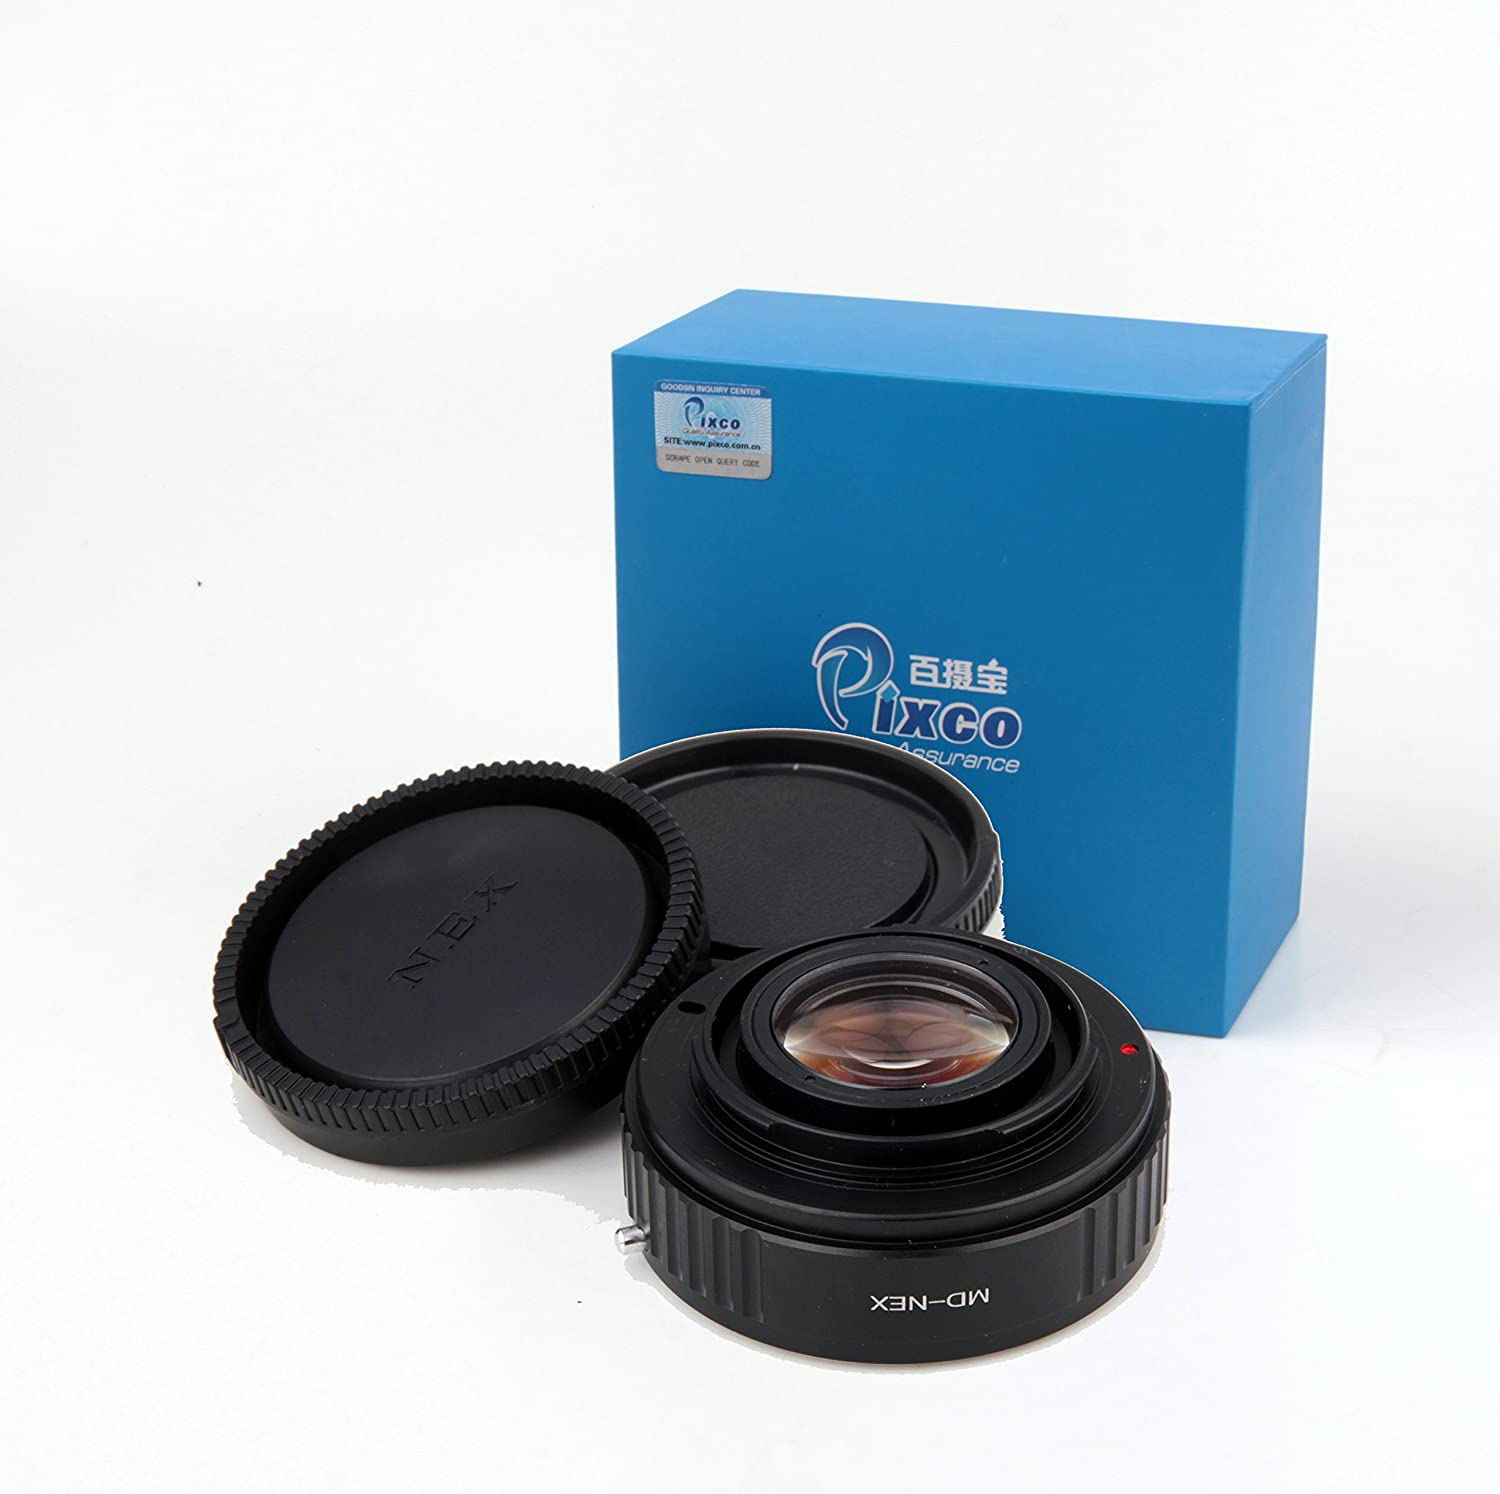 Pixco Focal Reducer Speed Booster Objektiv-Adapter: Amazon.de: Kamera